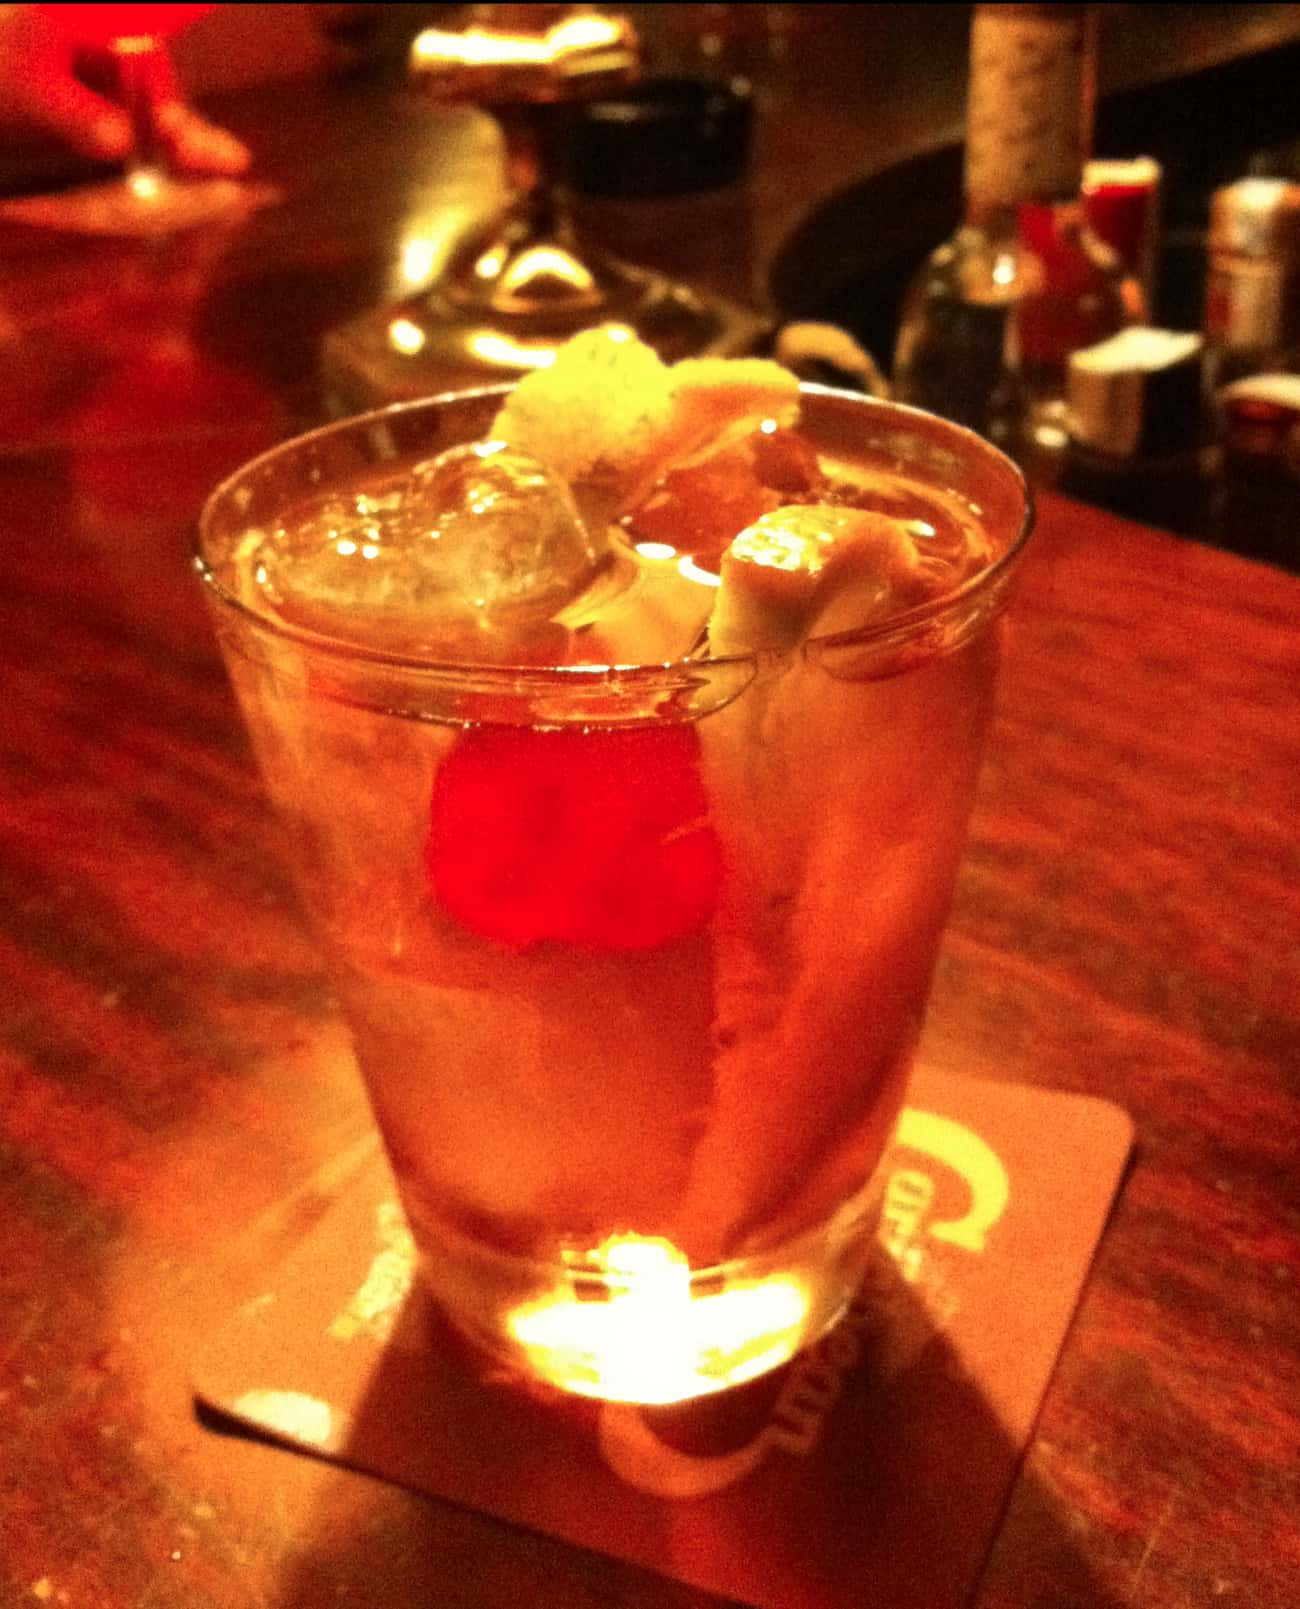 Old Fashioned is listed (or ranked) 4 on the list The Best Whiskey Cocktails for Summer